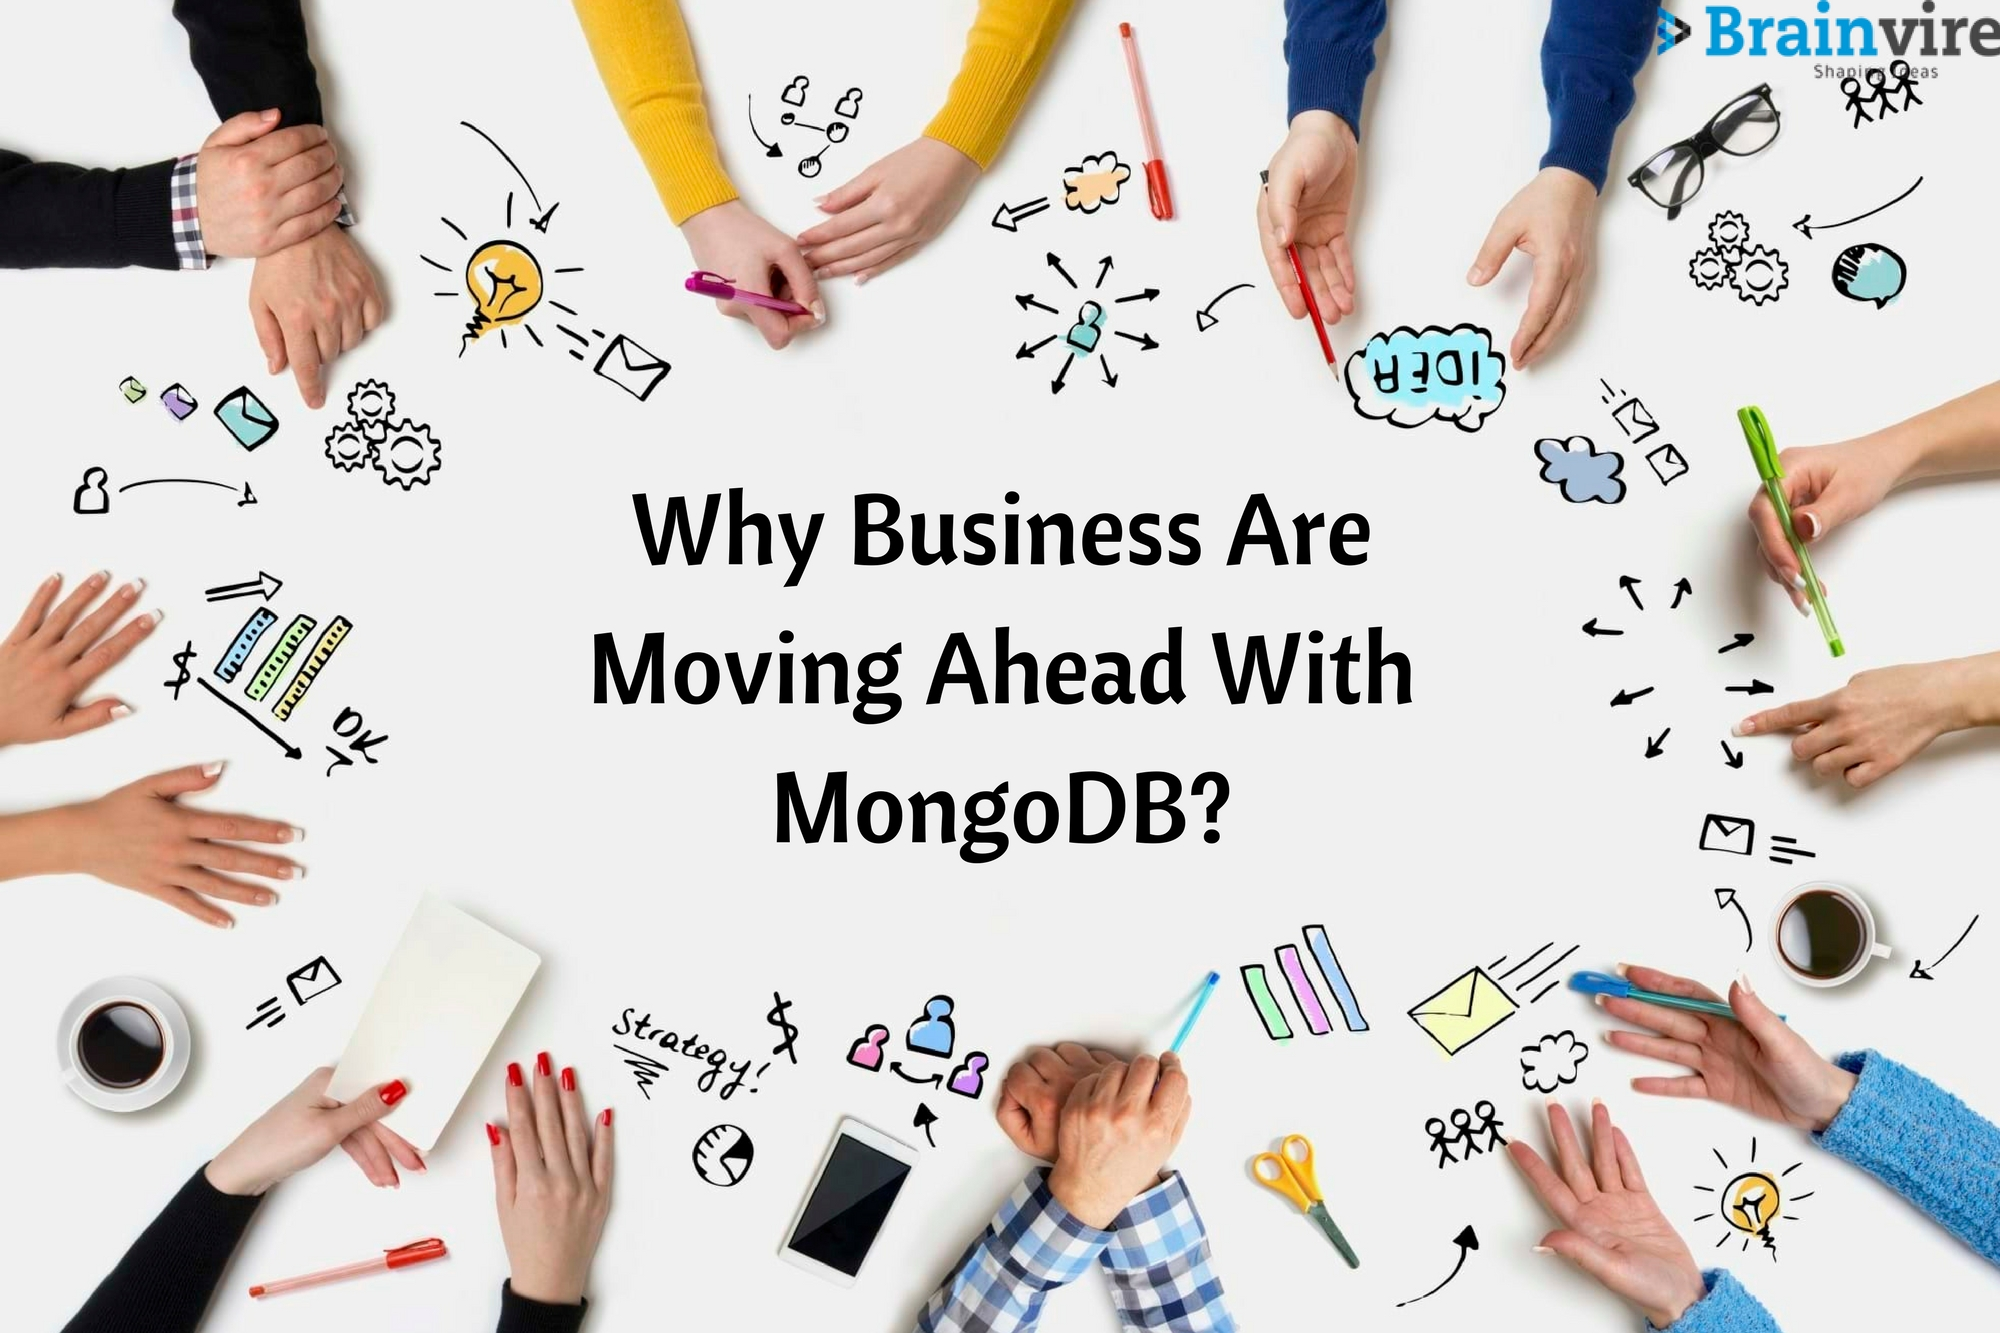 Why Business Are Moving Ahead With MongoDB?